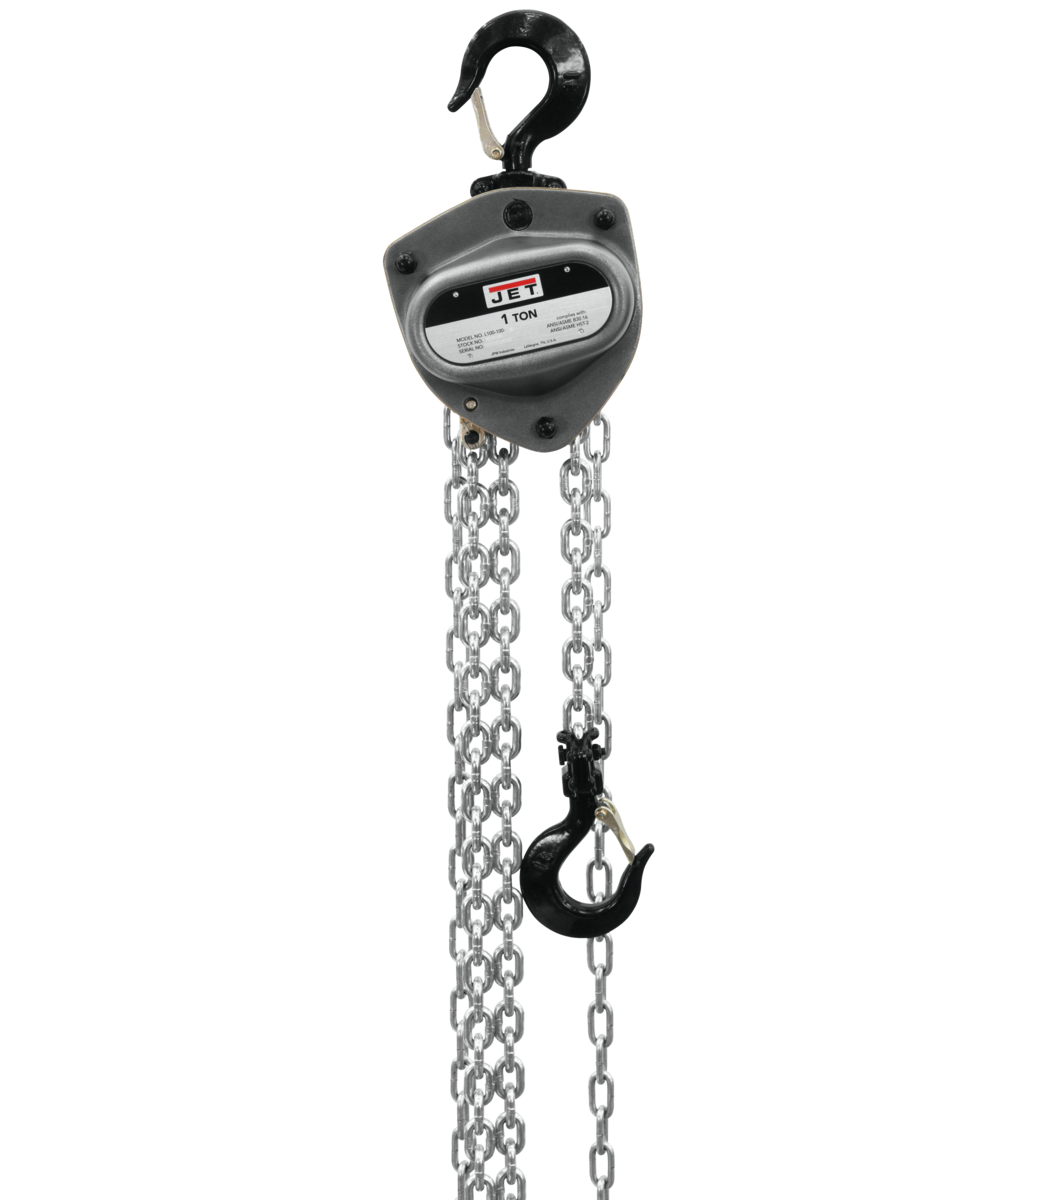 L-100-100WO-10, 1-Ton Hand Chain Hoist With 10' Lift & Overload Protection